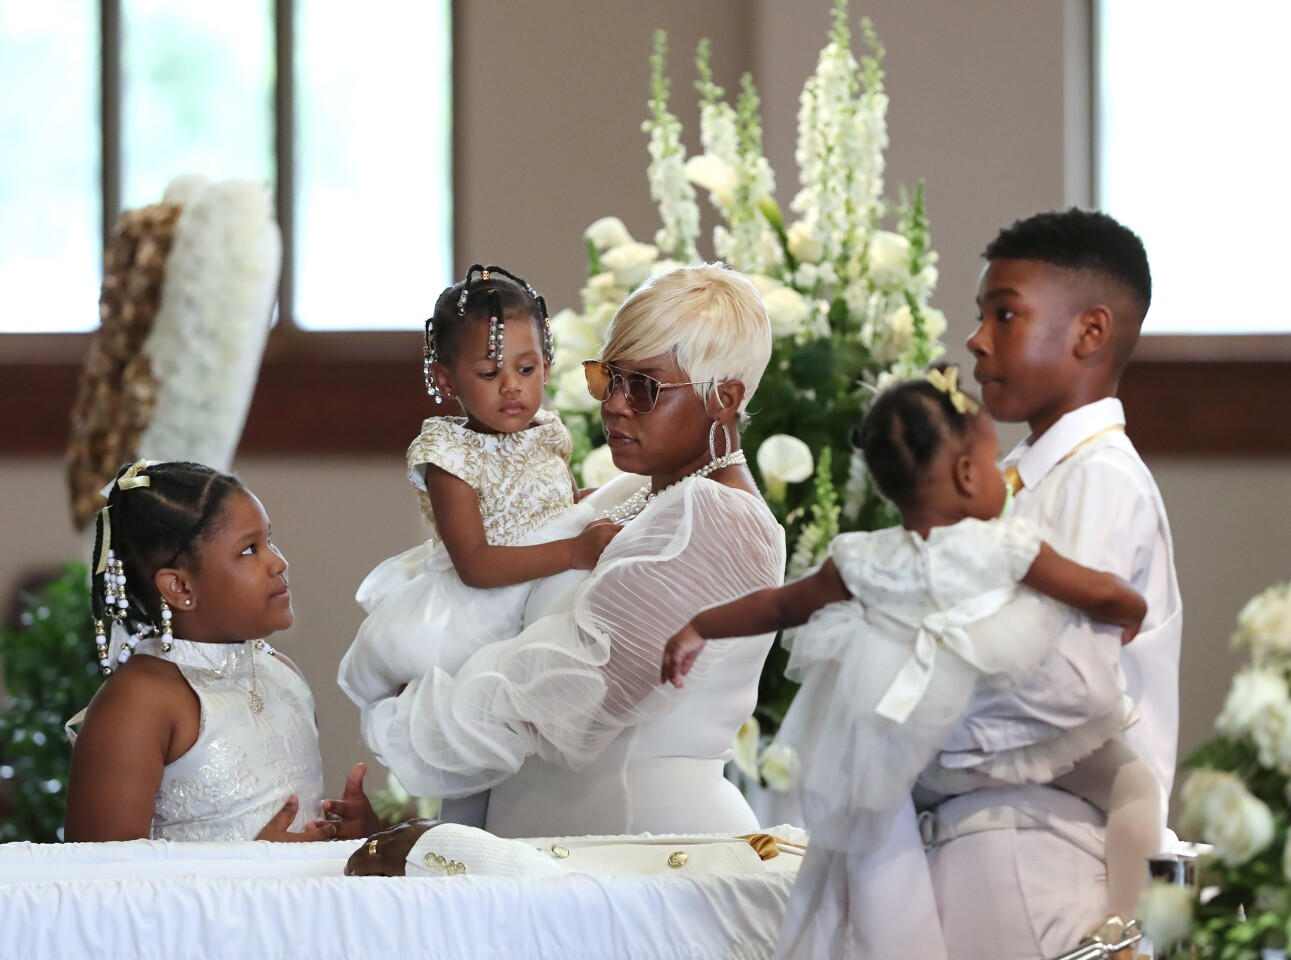 """ATLANTA, GEORGIA - JUNE 23: Tomika Miller, wife of Rayshard Brooks, holds their 2-year-old daughter Memory while pausing with her children during the family processional at his funeral in in Ebenezer Baptist Church on June 23, 2020 in Atlanta. Brooks, 27, died June 12 after being shot by an officer in a Wendy's parking lot, sparking protests in Atlanta and around the country. The Rev. Raphael G. Warnock, senior pastor of Ebenezer, said """"Rayshard Brooks wasn't just running from the police. He was running from a system that makes slaves out of people. A system that doesn't give ordinary people who've made mistakes a second chance, a real shot at redemption"""" (Photo by Curtis Compton-Pool/Getty Images)"""